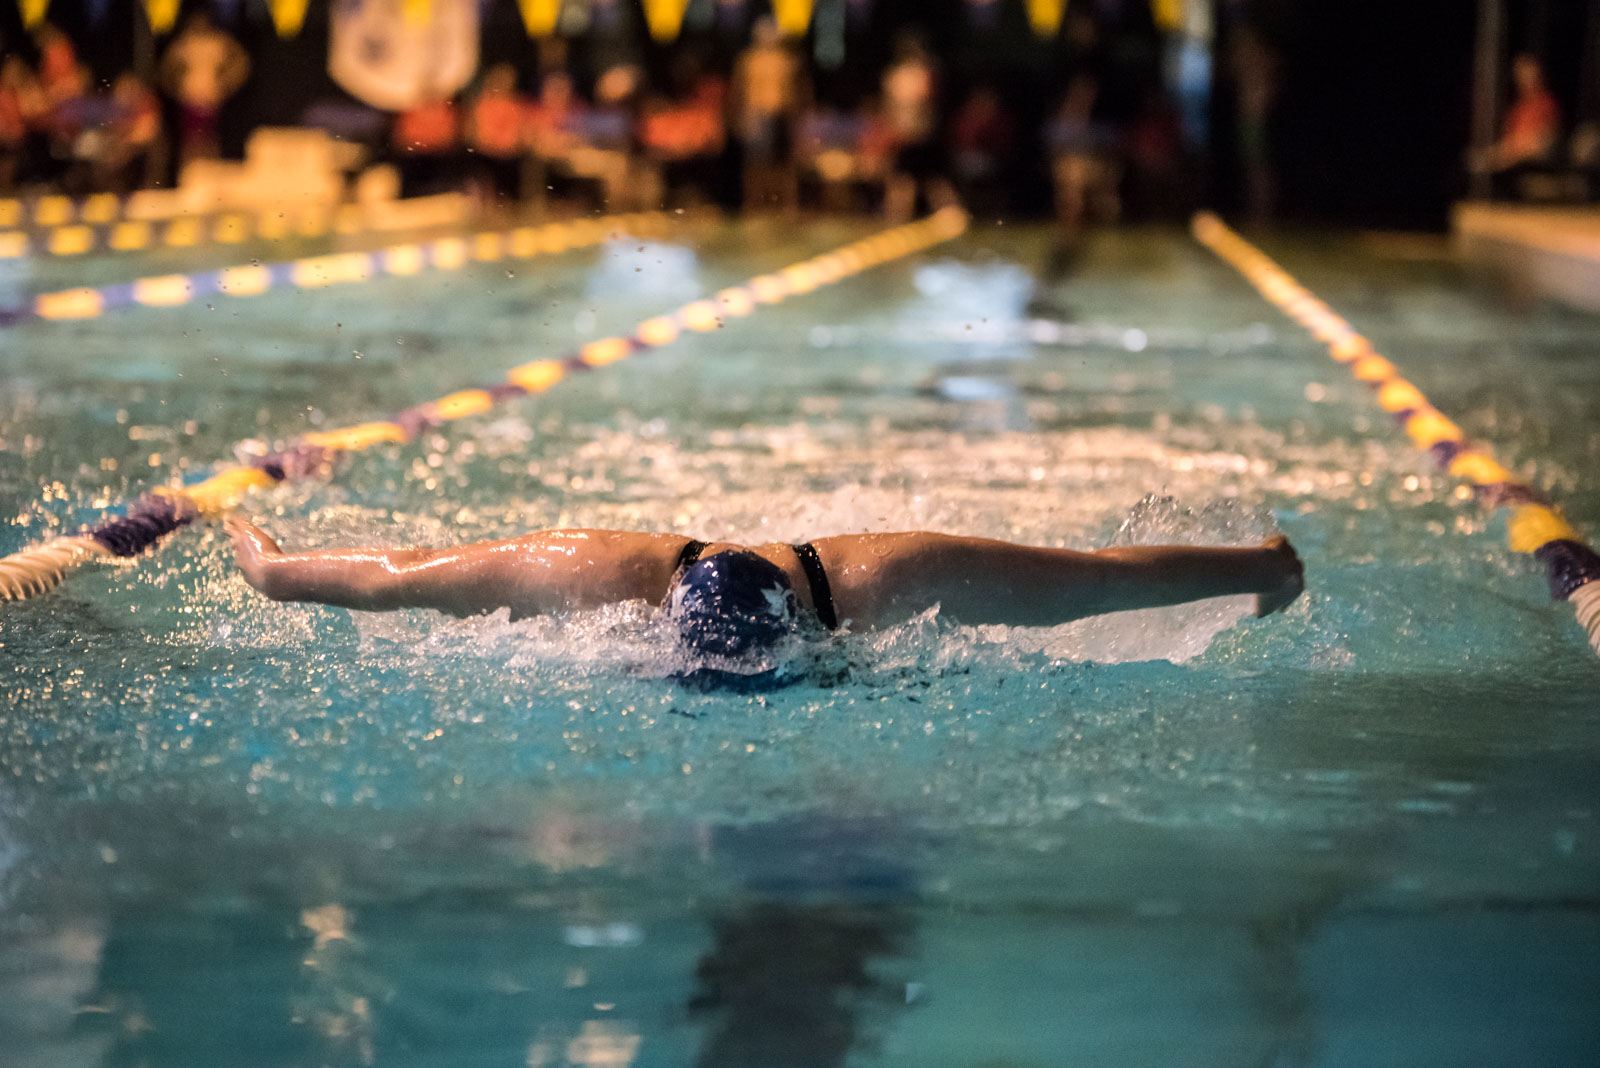 It's been another dominating season so far for the swim team.